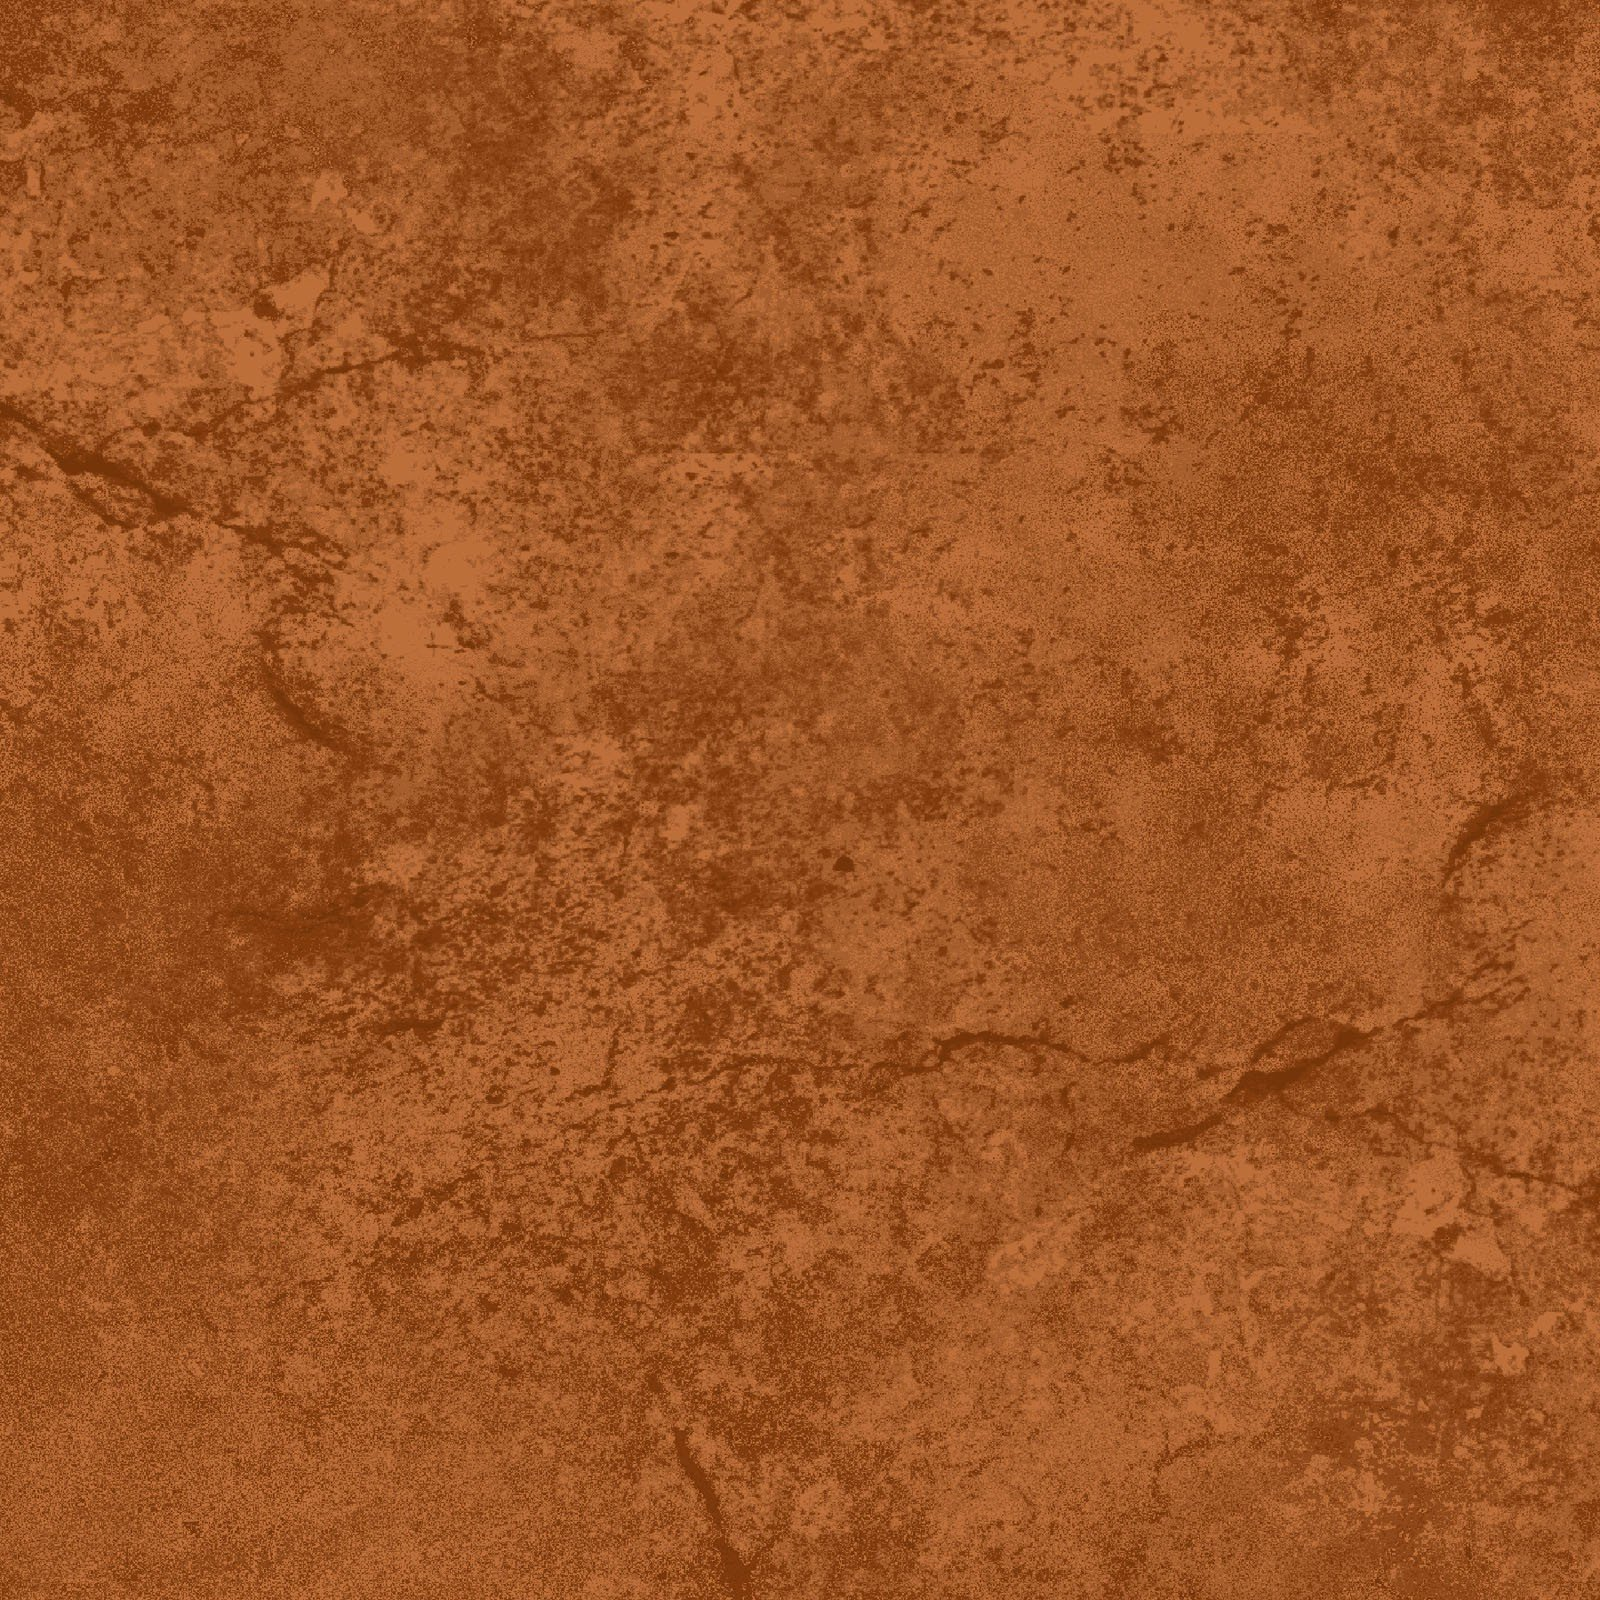 Granite - Pumpkin Spice FQ<br/>Maywood Studio 102-O